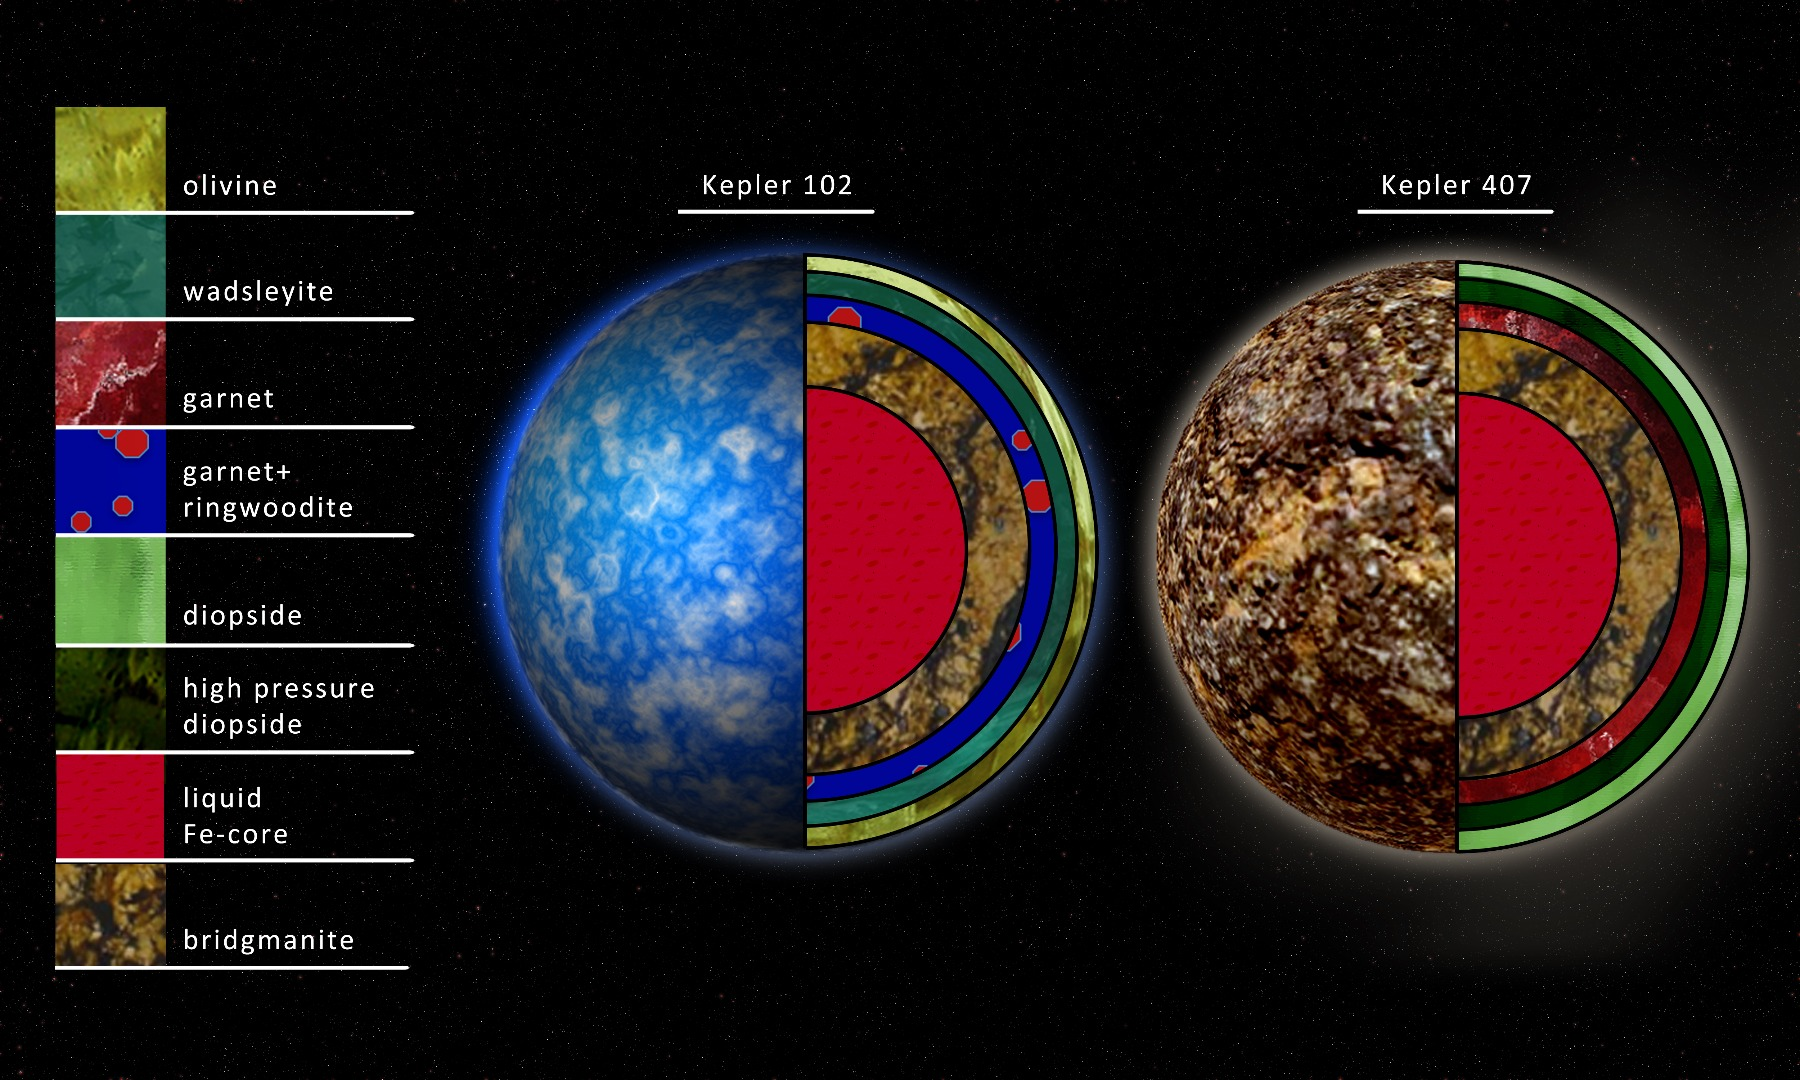 Earth-like planets may not be very Earth-like